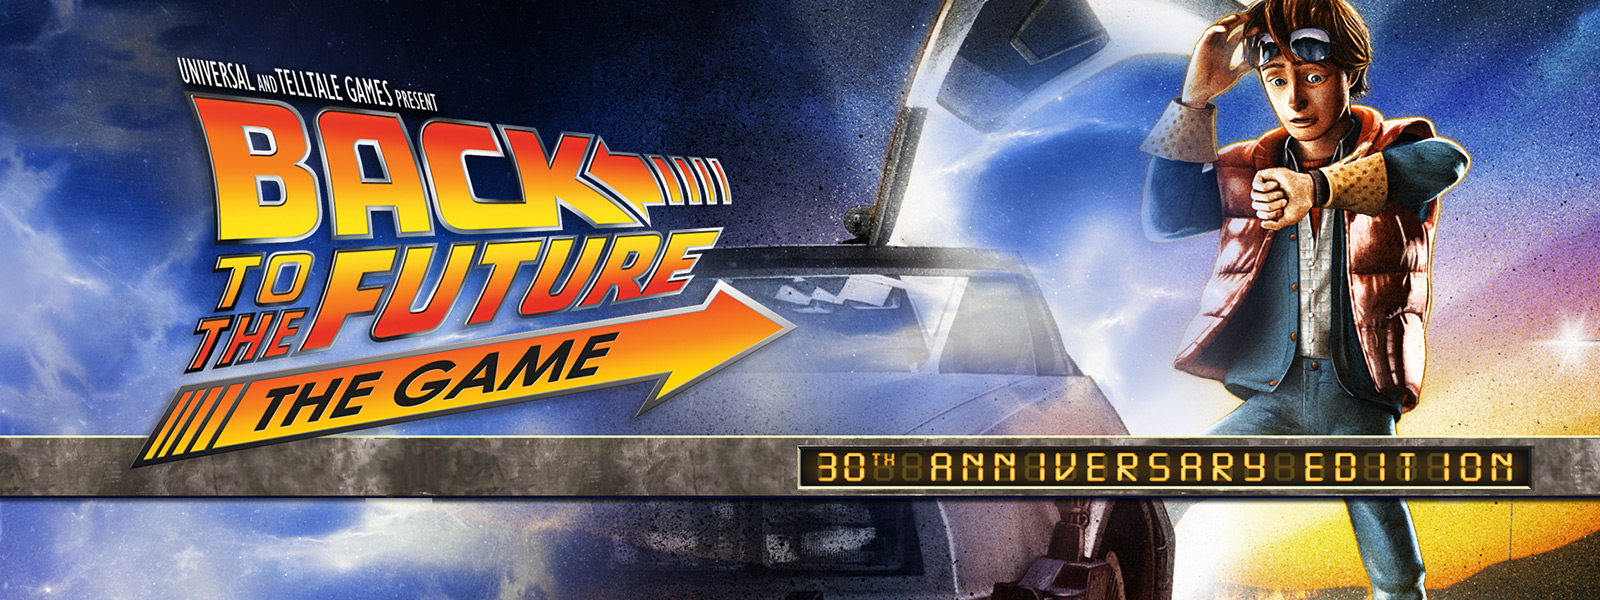 Resultado de imagem para Back to the Future: The Game - 30th Anniversary Edition